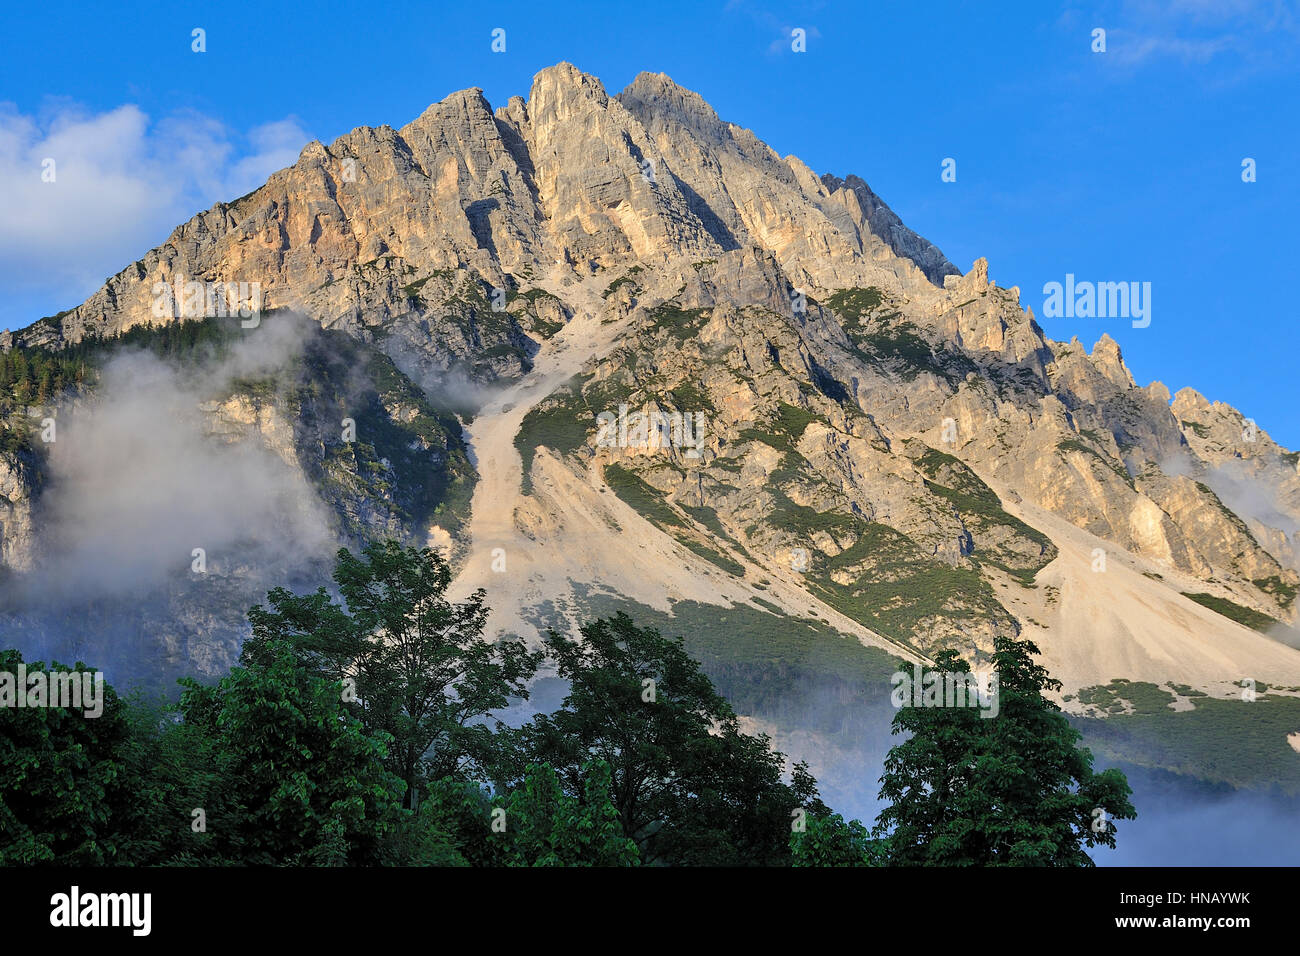 Mountains of Cortina d'Ampezzo, Dolomiti Alps, Italy - Stock Image